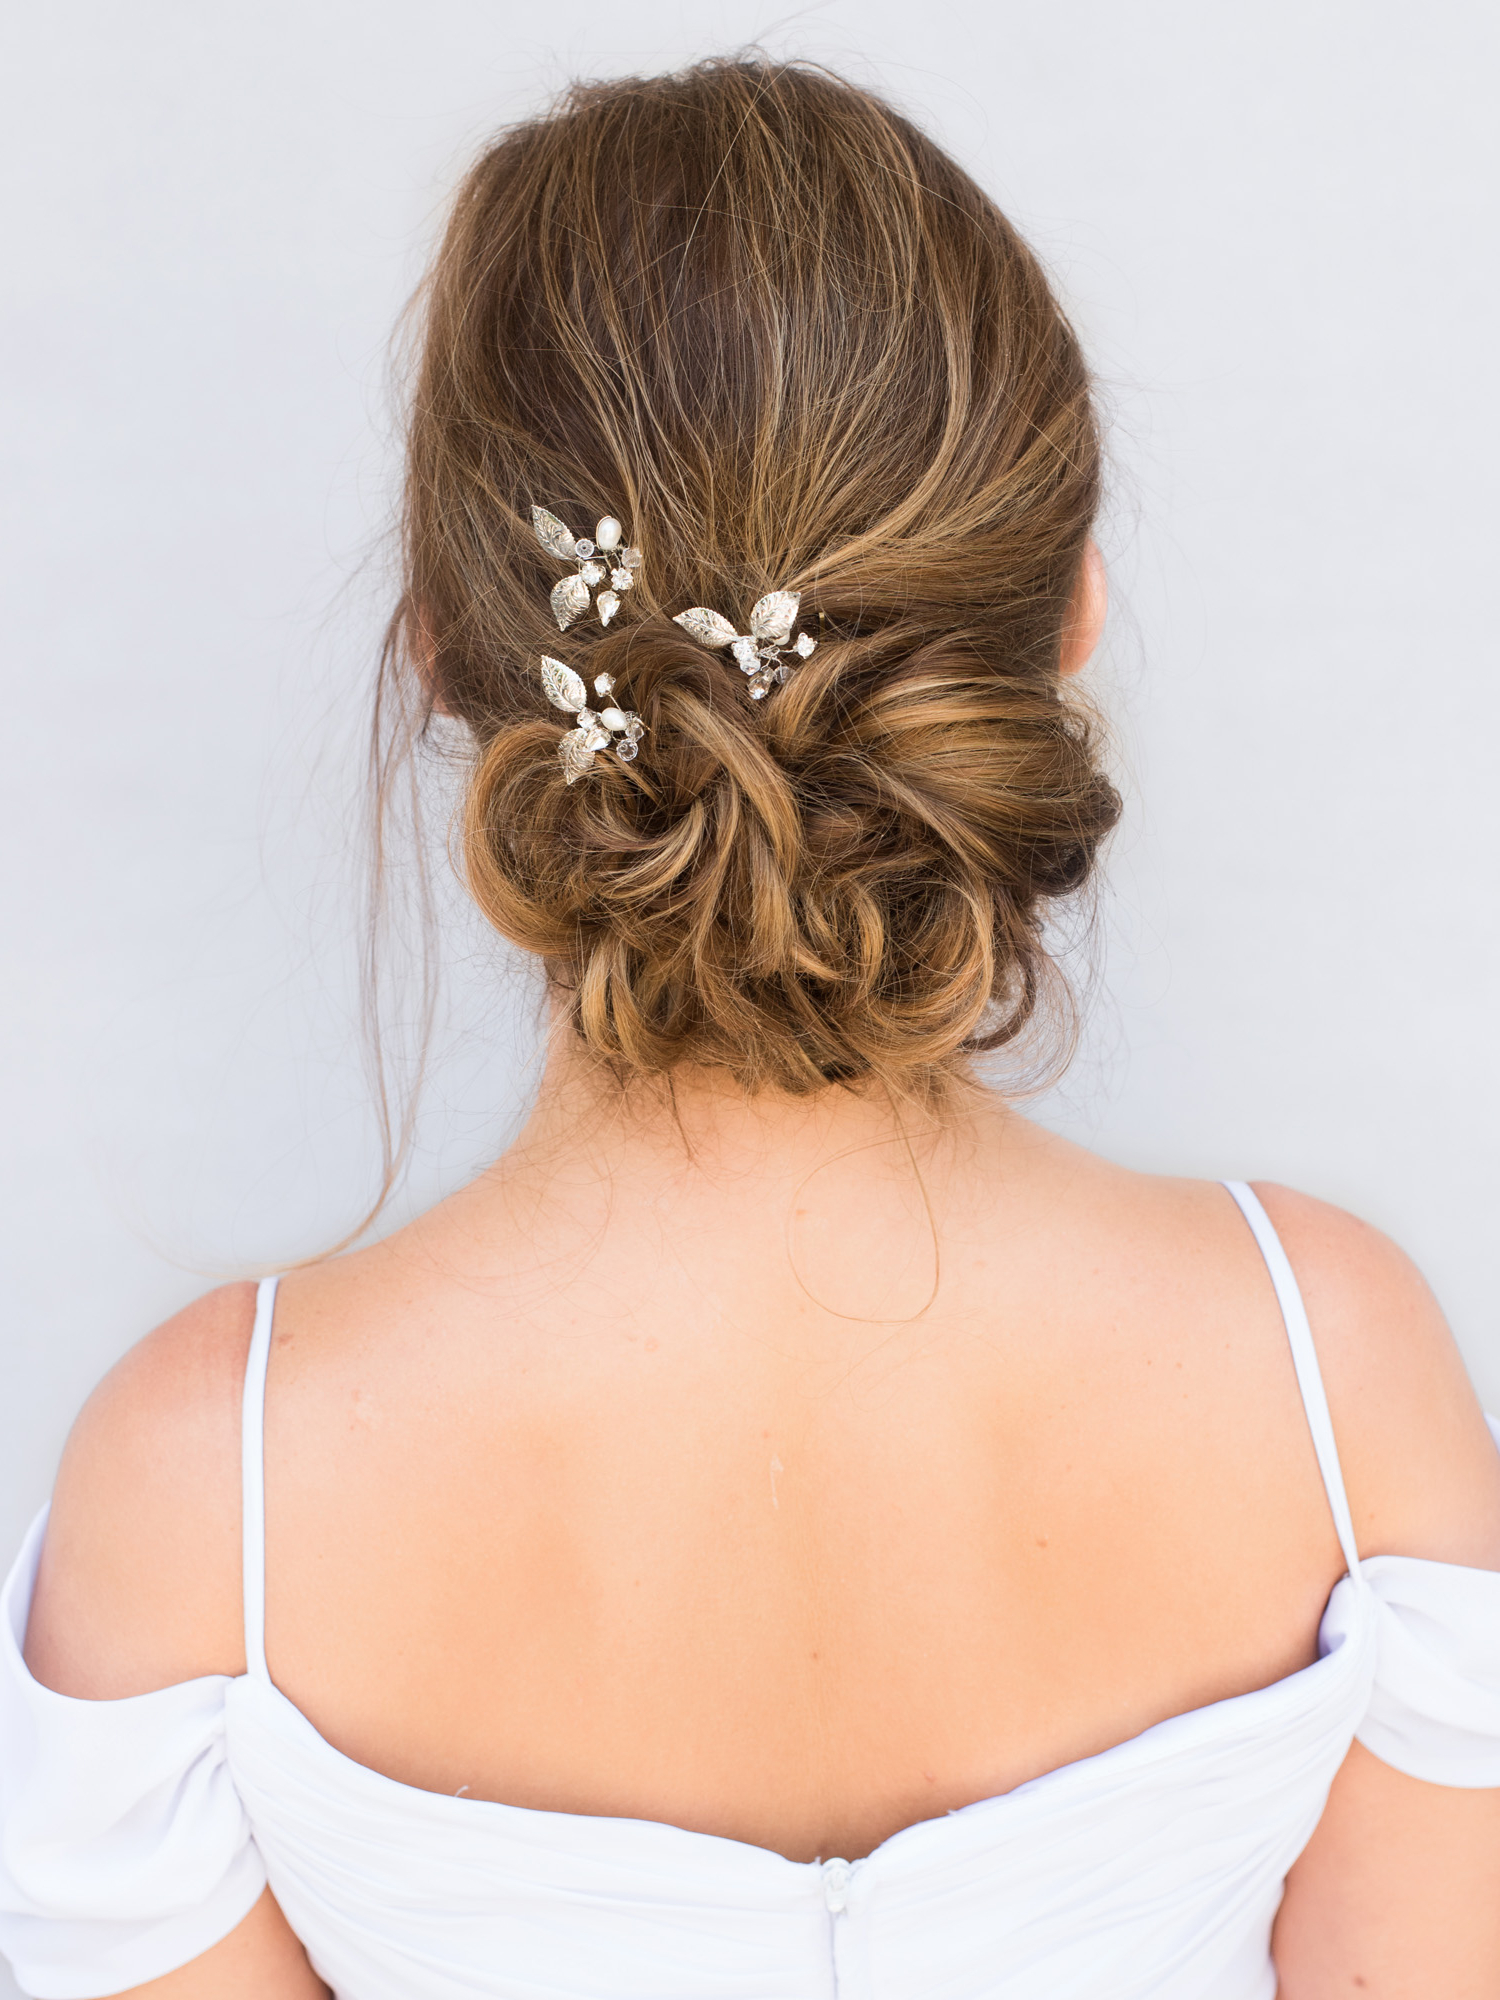 Trendy Chignon Wedding Hairstyles With Pinned Up Embellishment Within Top 10 Tips For Choosing Your Bridal Hair Accessories – Hair Comes (View 6 of 20)